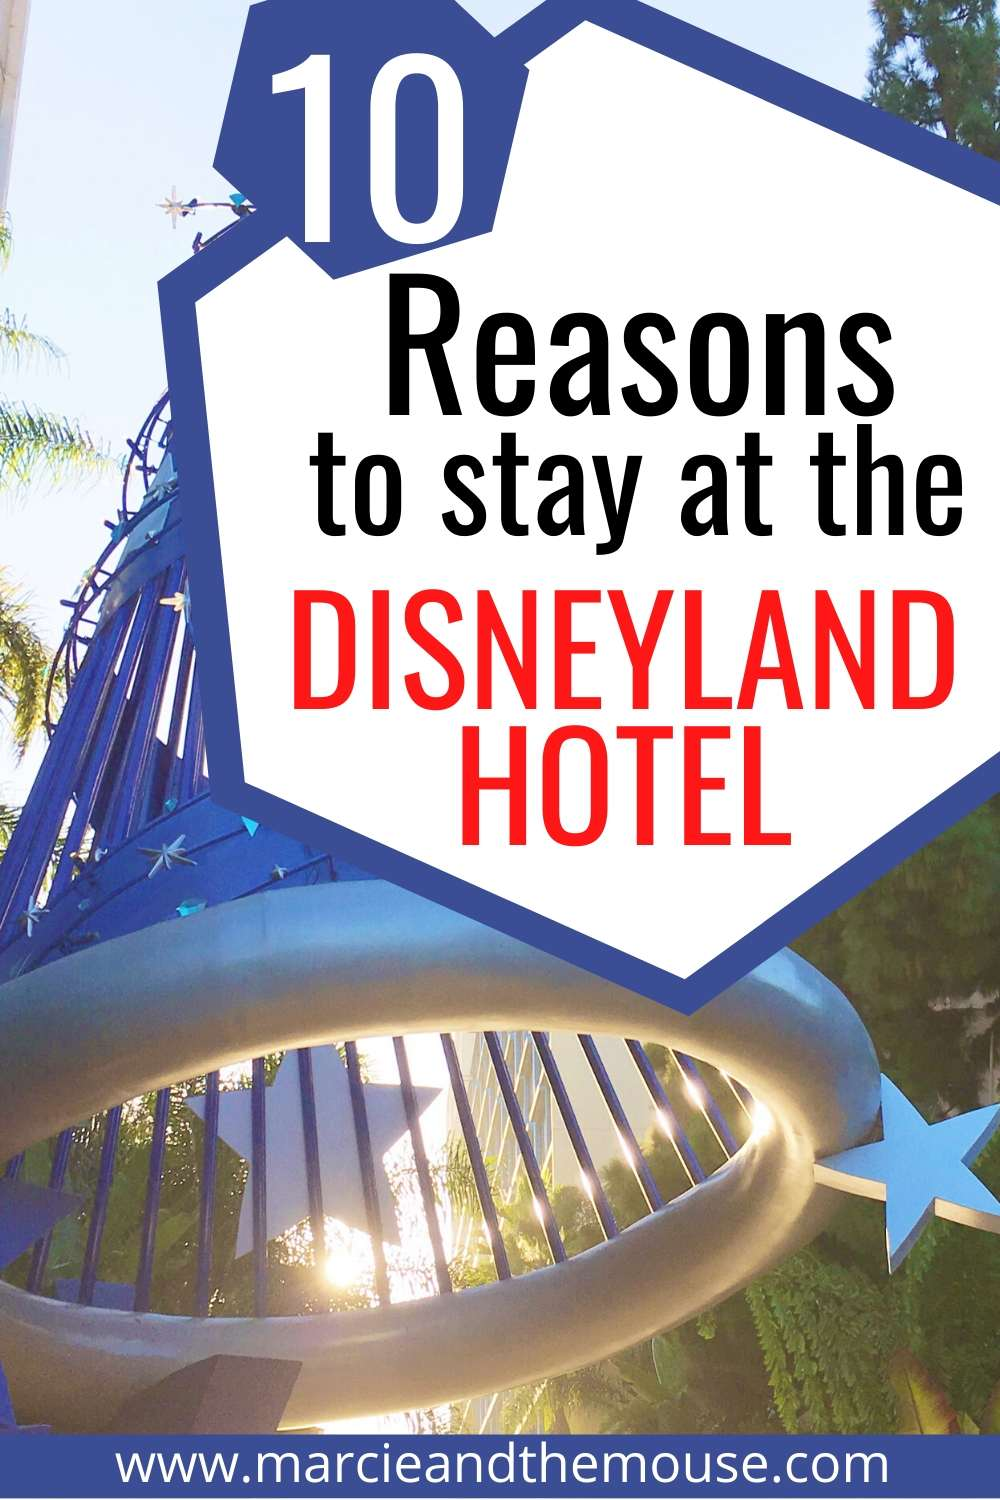 10 Reasons to Stay at the Disneyland Hotel featured by top US Disney blogger, Marcie and the Mouse.